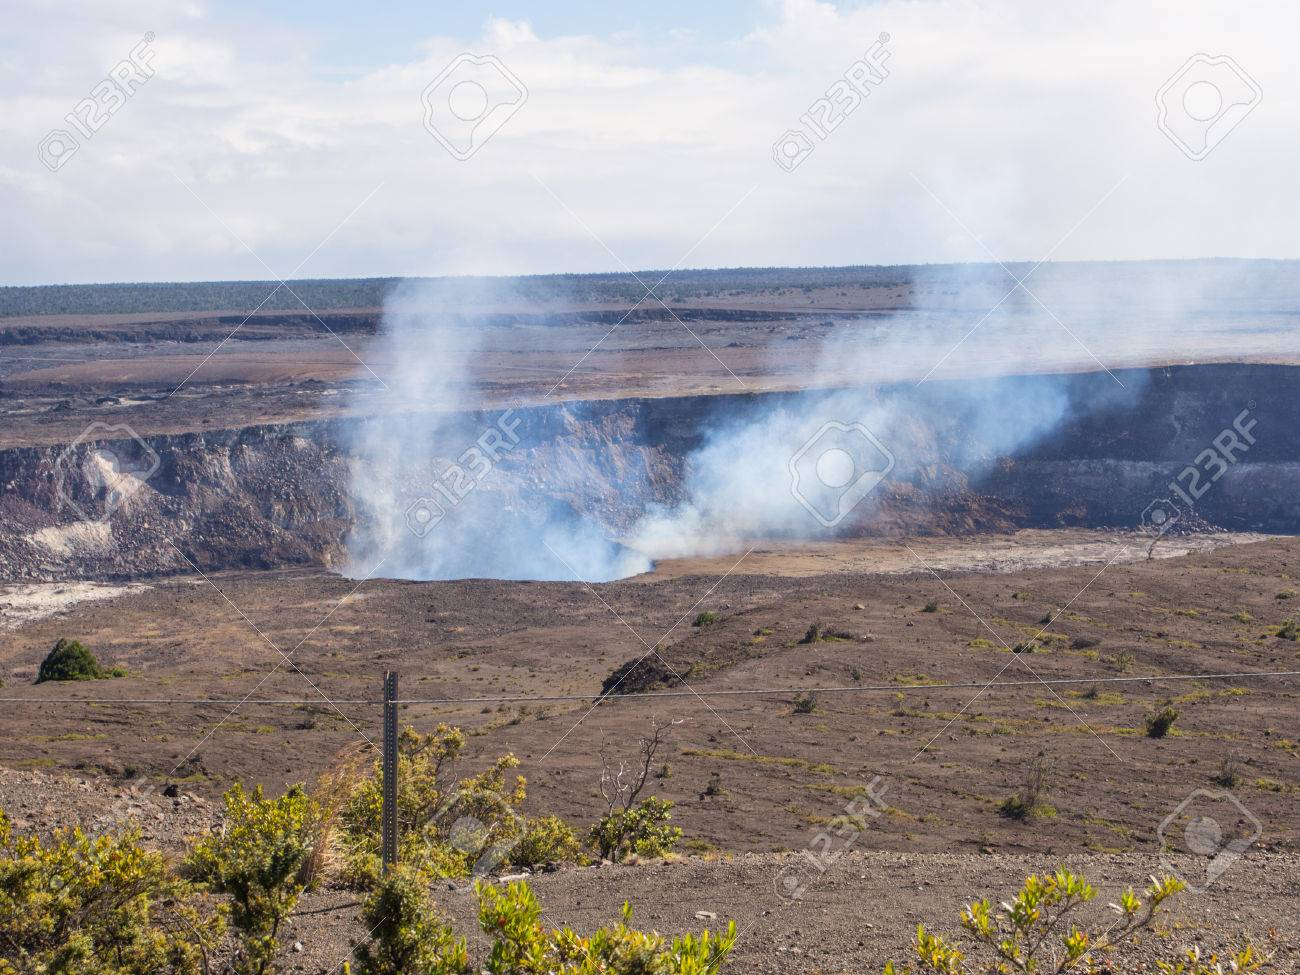 Kilauea is a currently active shield volcano in the Hawaiian